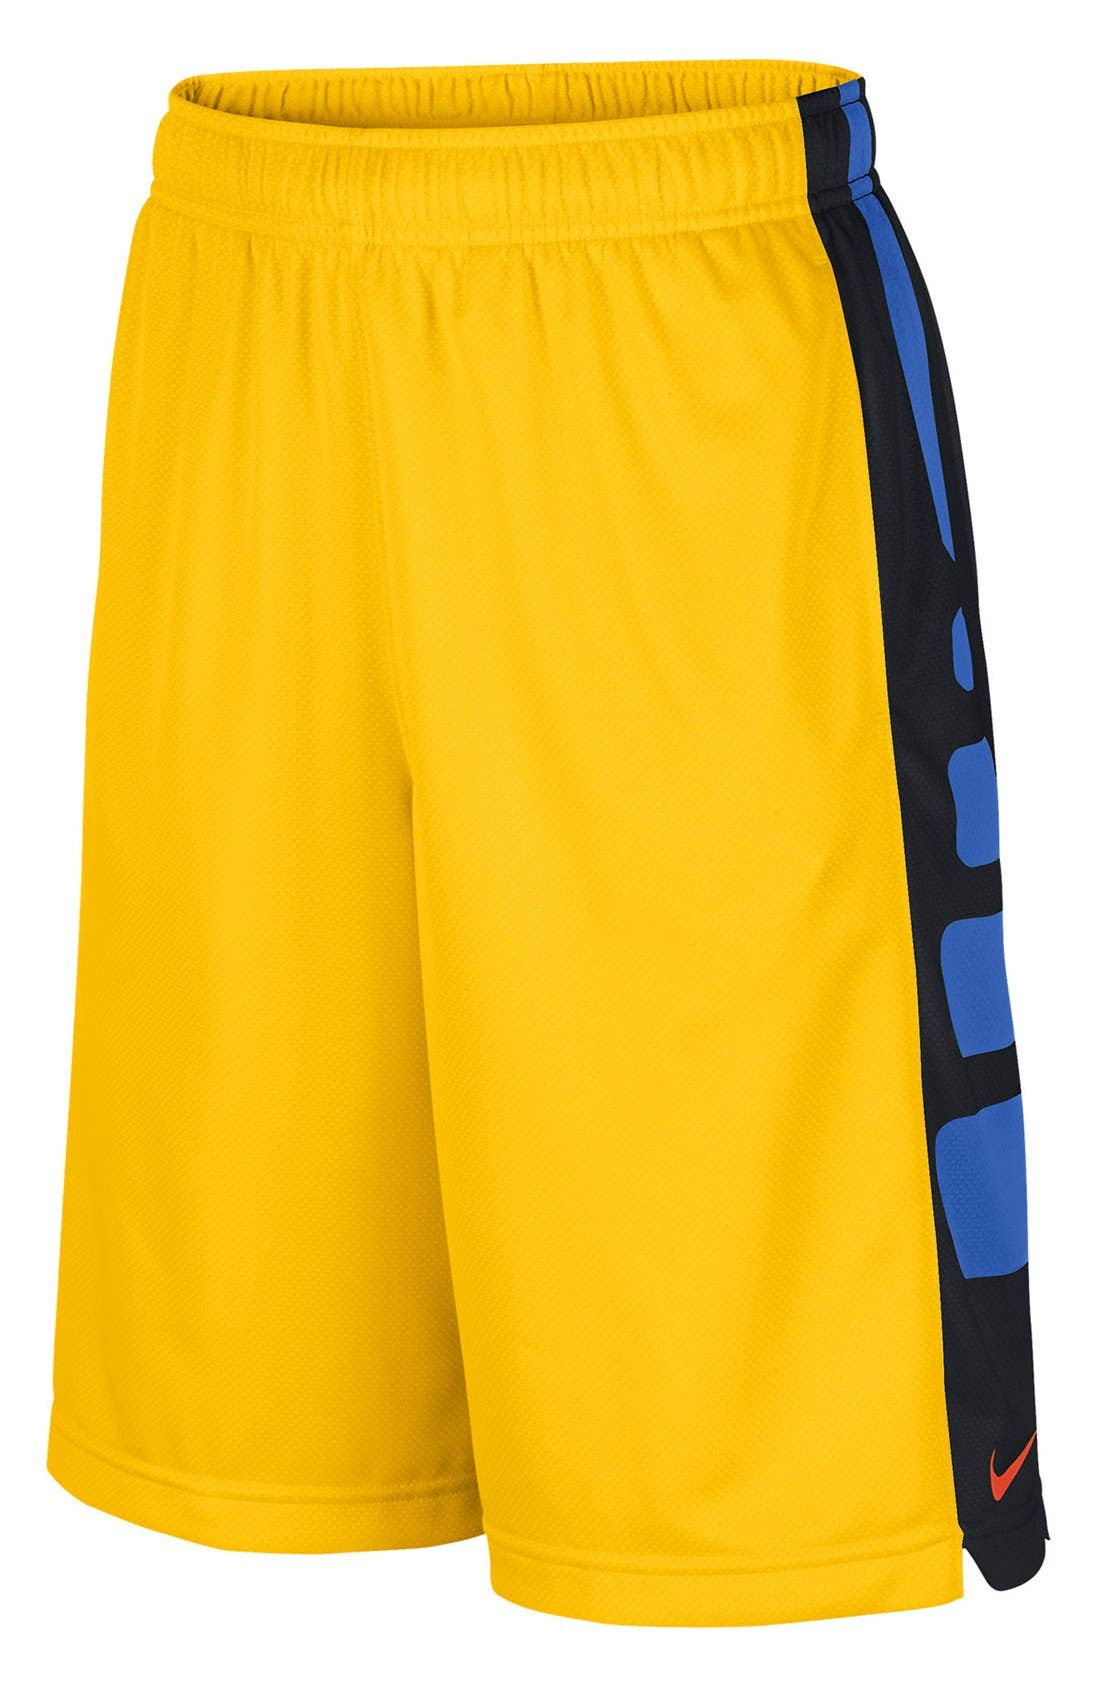 Alternate Image 1 Selected - Nike 'Elite' Shorts (Big Boys)